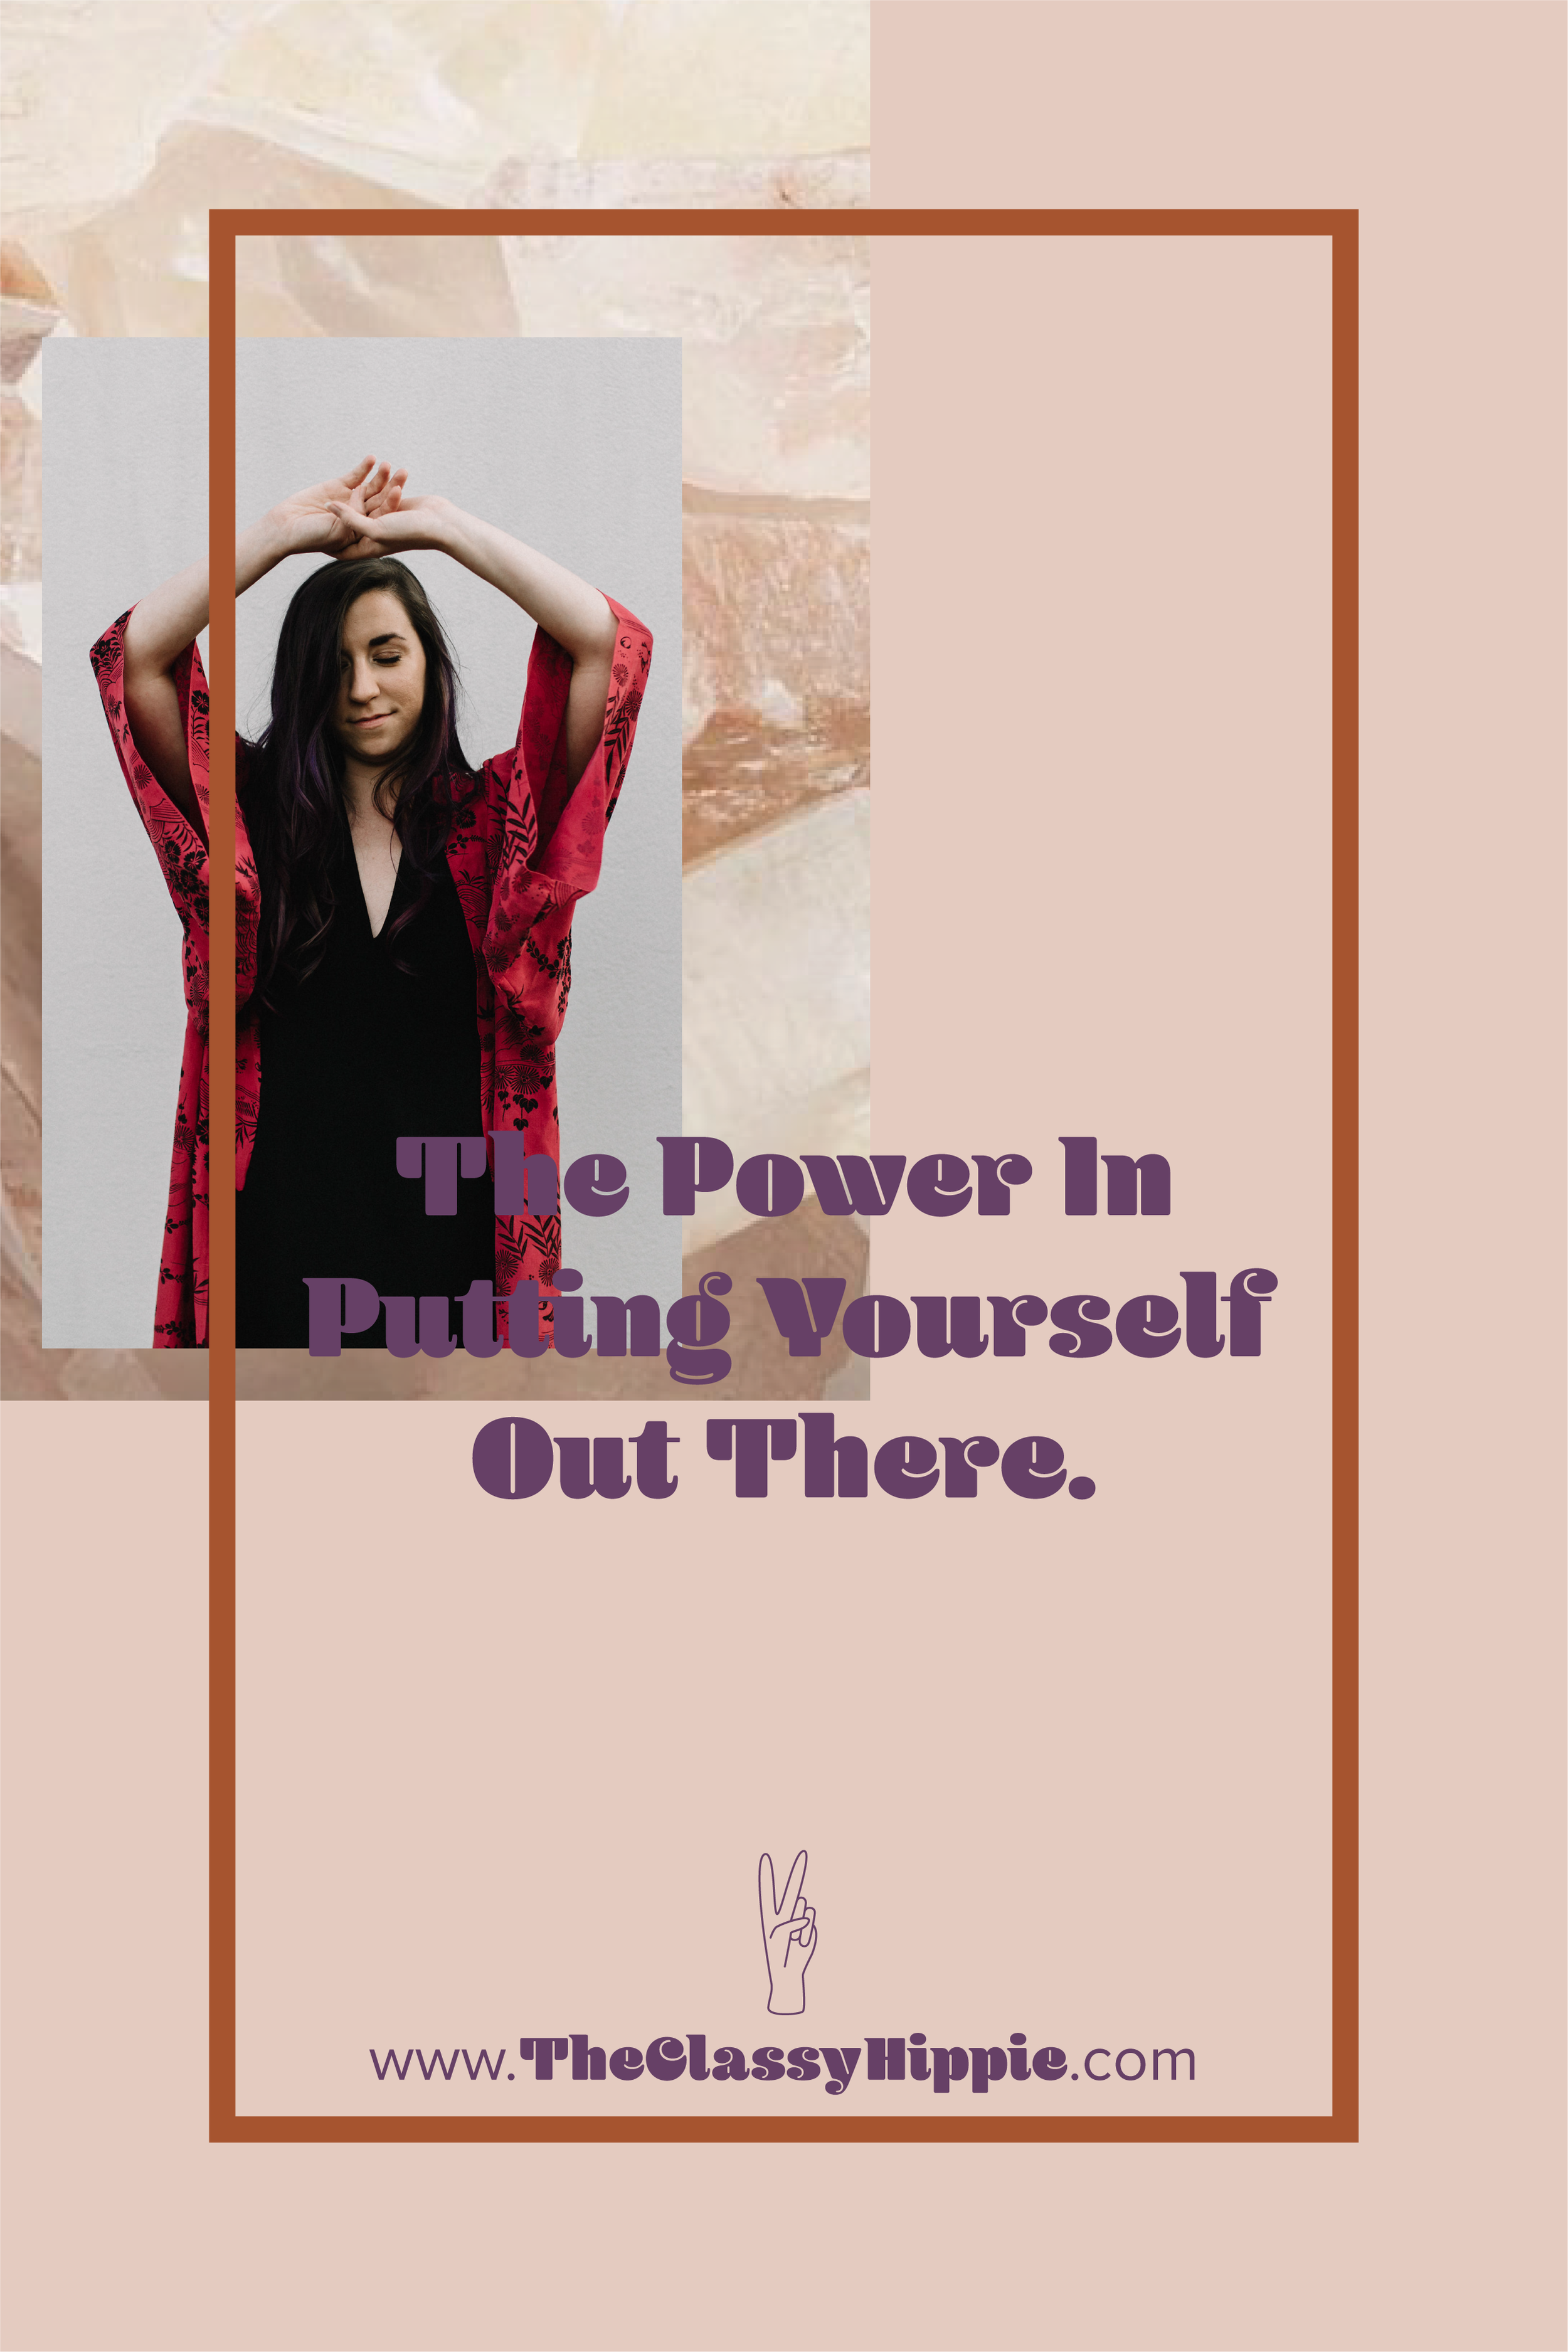 If you want to grow and see major shifts in your own personal development - you need to get GOOD at putting yourself out there because the results are POWERFUL! Check out my most recent experience in putting myself out there and what I've gained as a result!